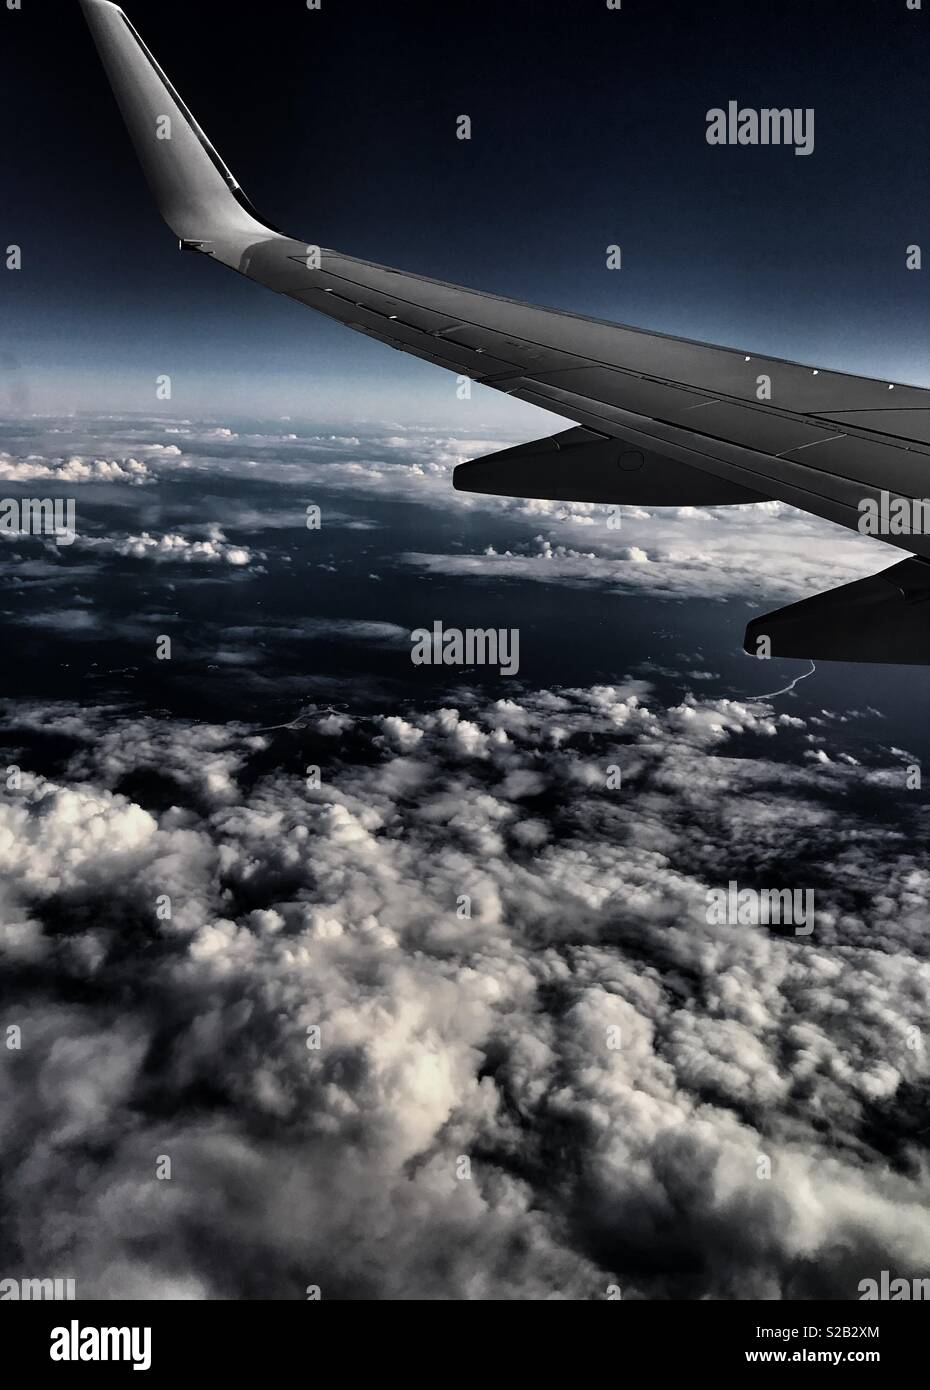 Flying above the clouds - Stock Image